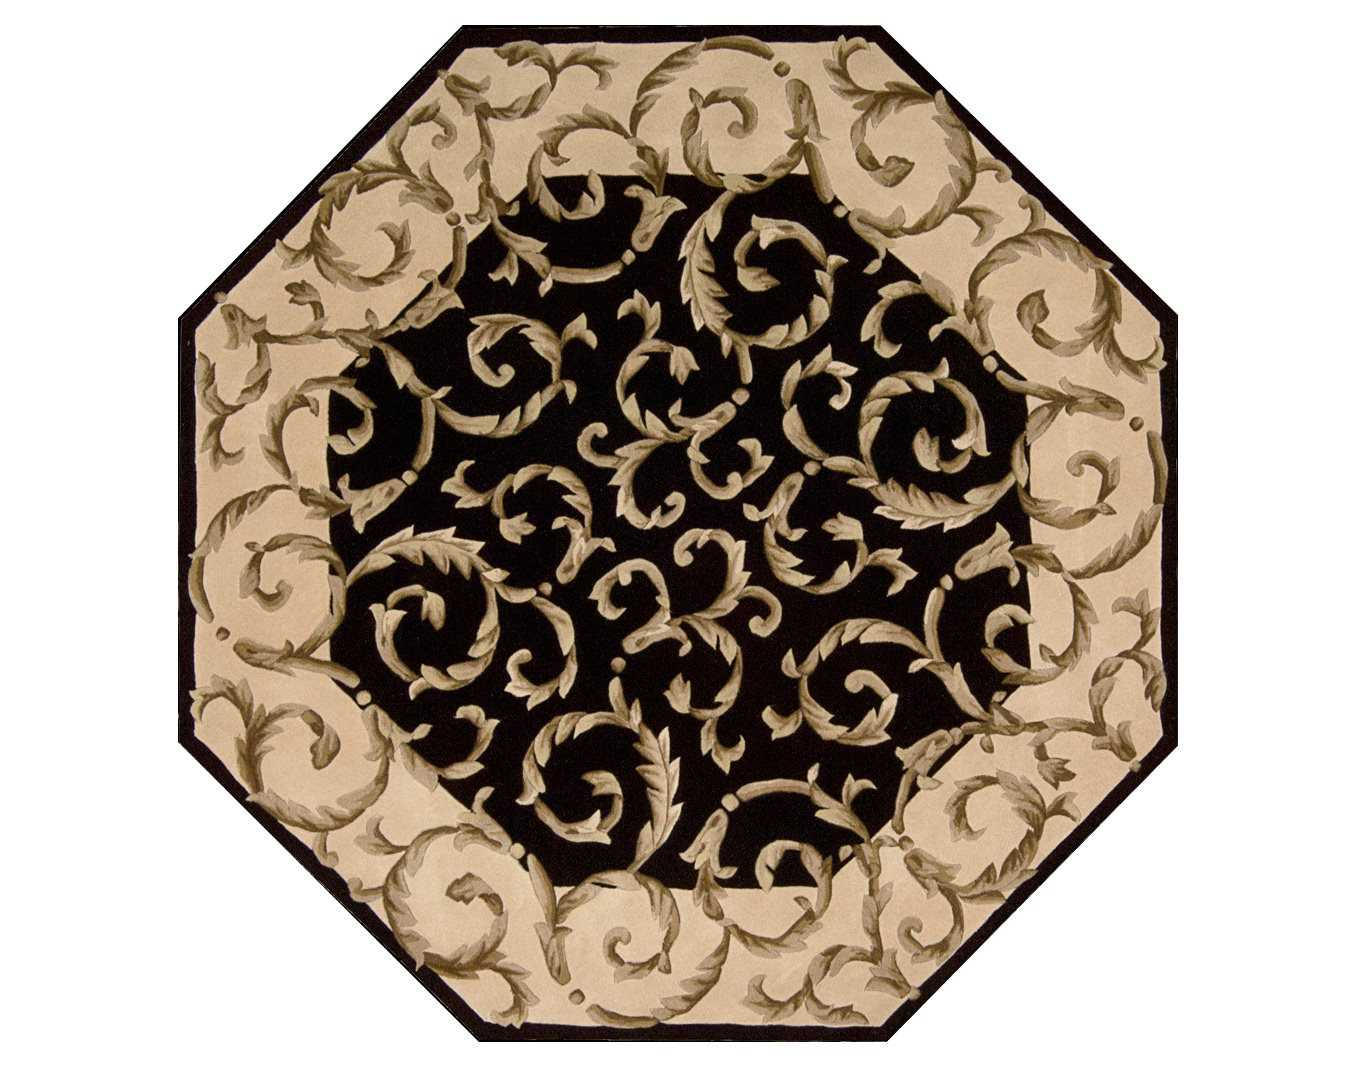 Nourison Versailles Palace 6 Octagon Black Area Rug : NRVP43BLKOCT2zm from luxedecor.com size 1356 x 1067 jpeg 121kB